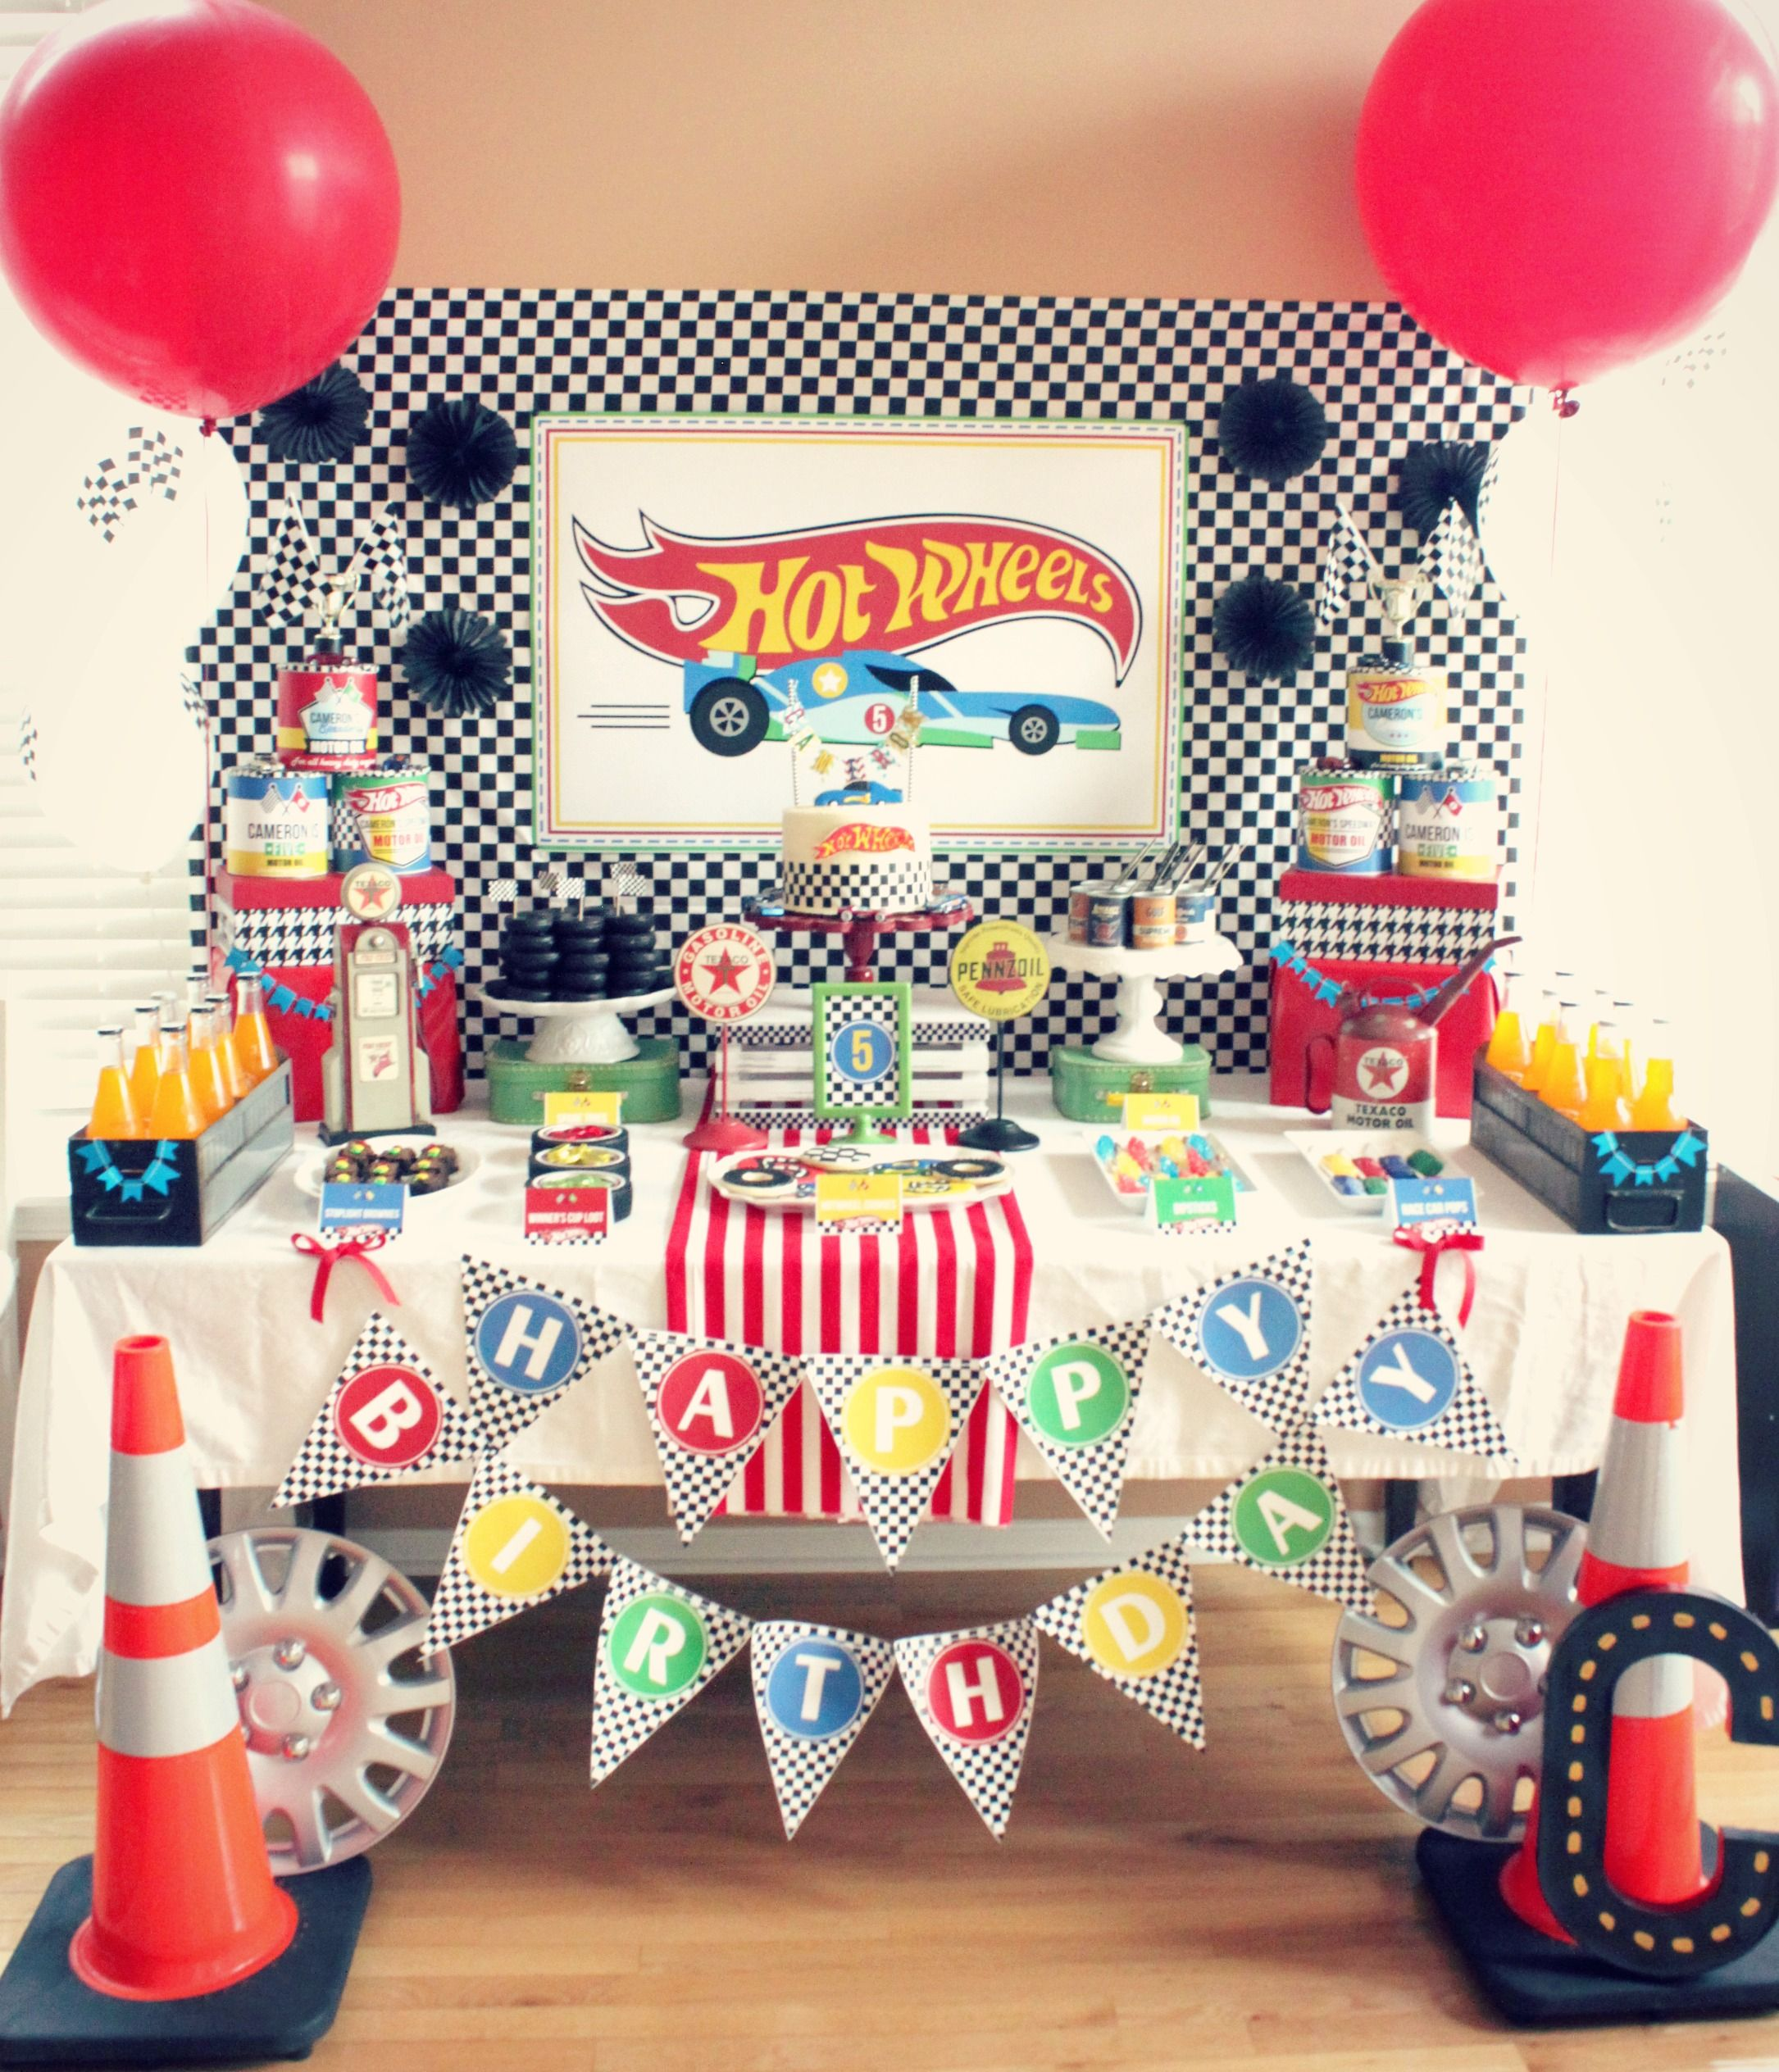 Simple Wedding Car Decoration Ideas: We Heart Parties: Hot Wheels Birthday Party